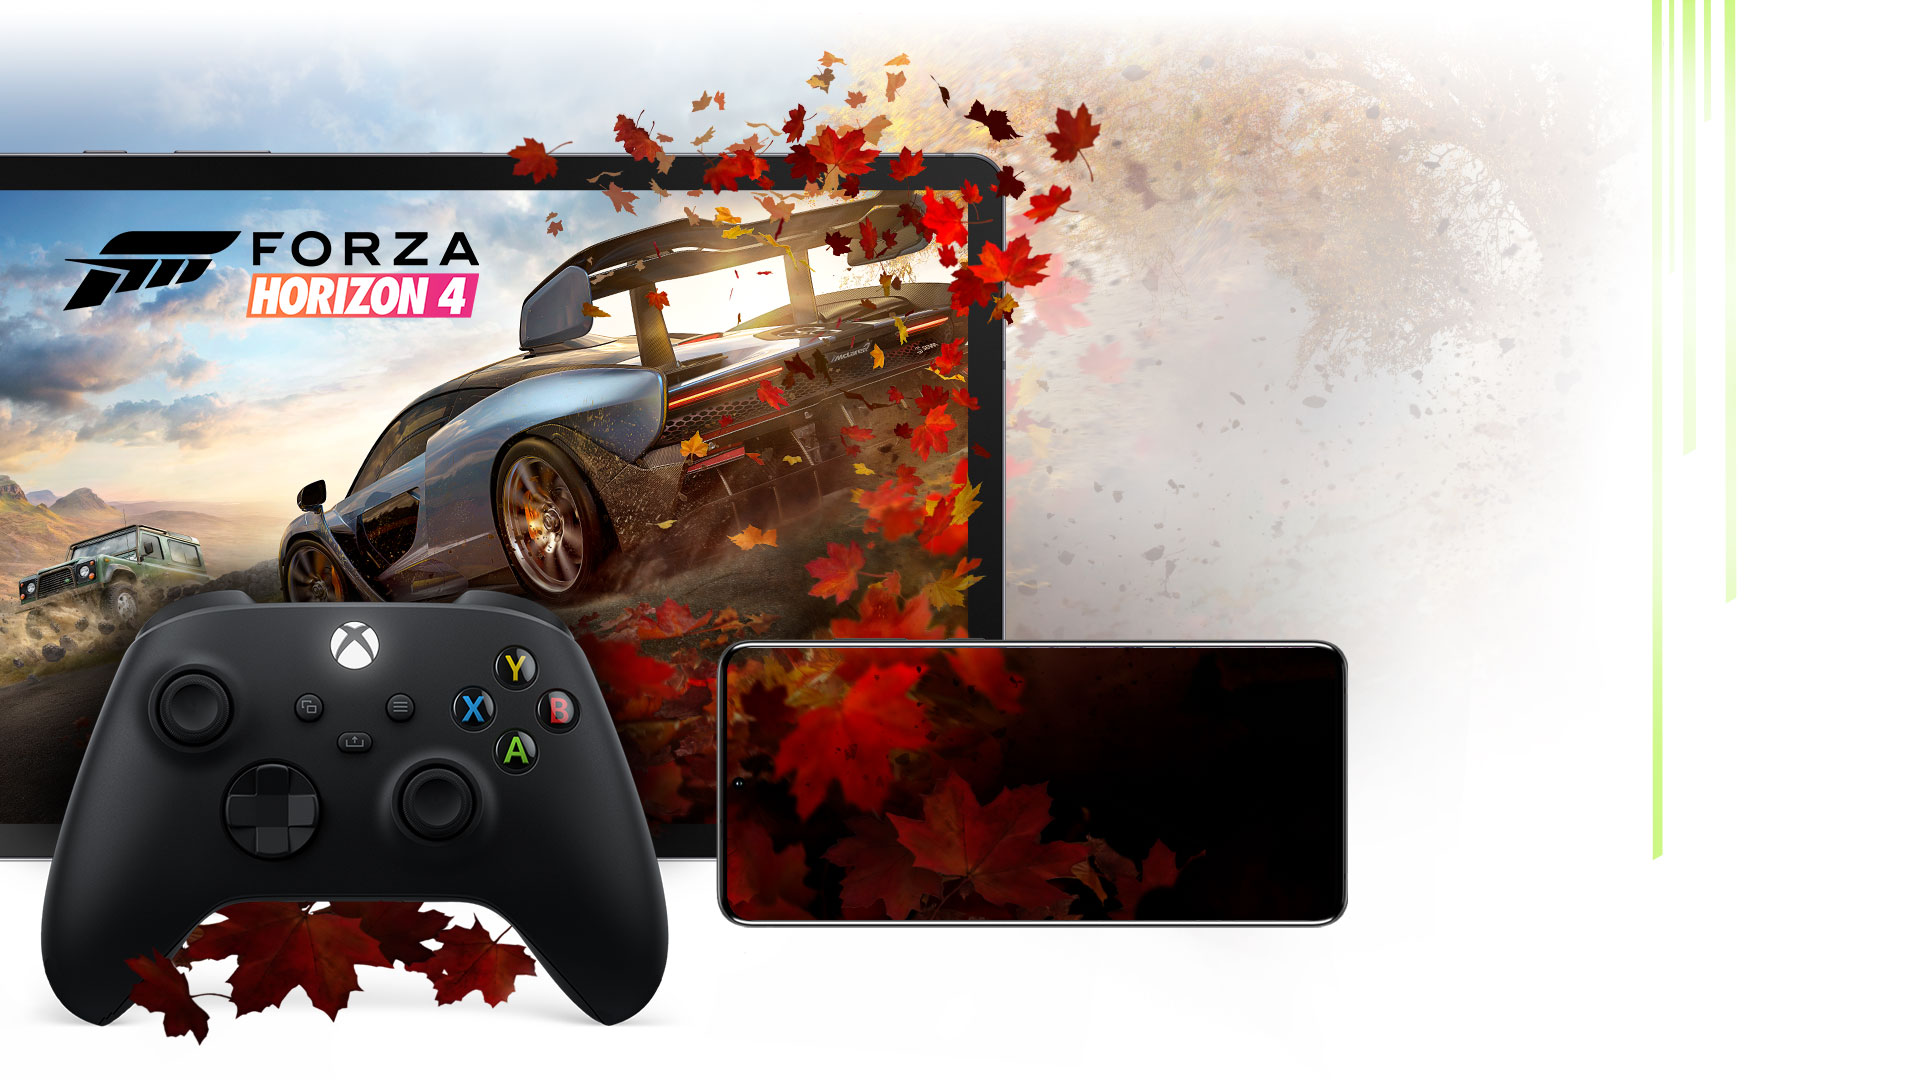 An Xbox Wireless Controller with a mobile phone and tablet showing Forza Horizon 4